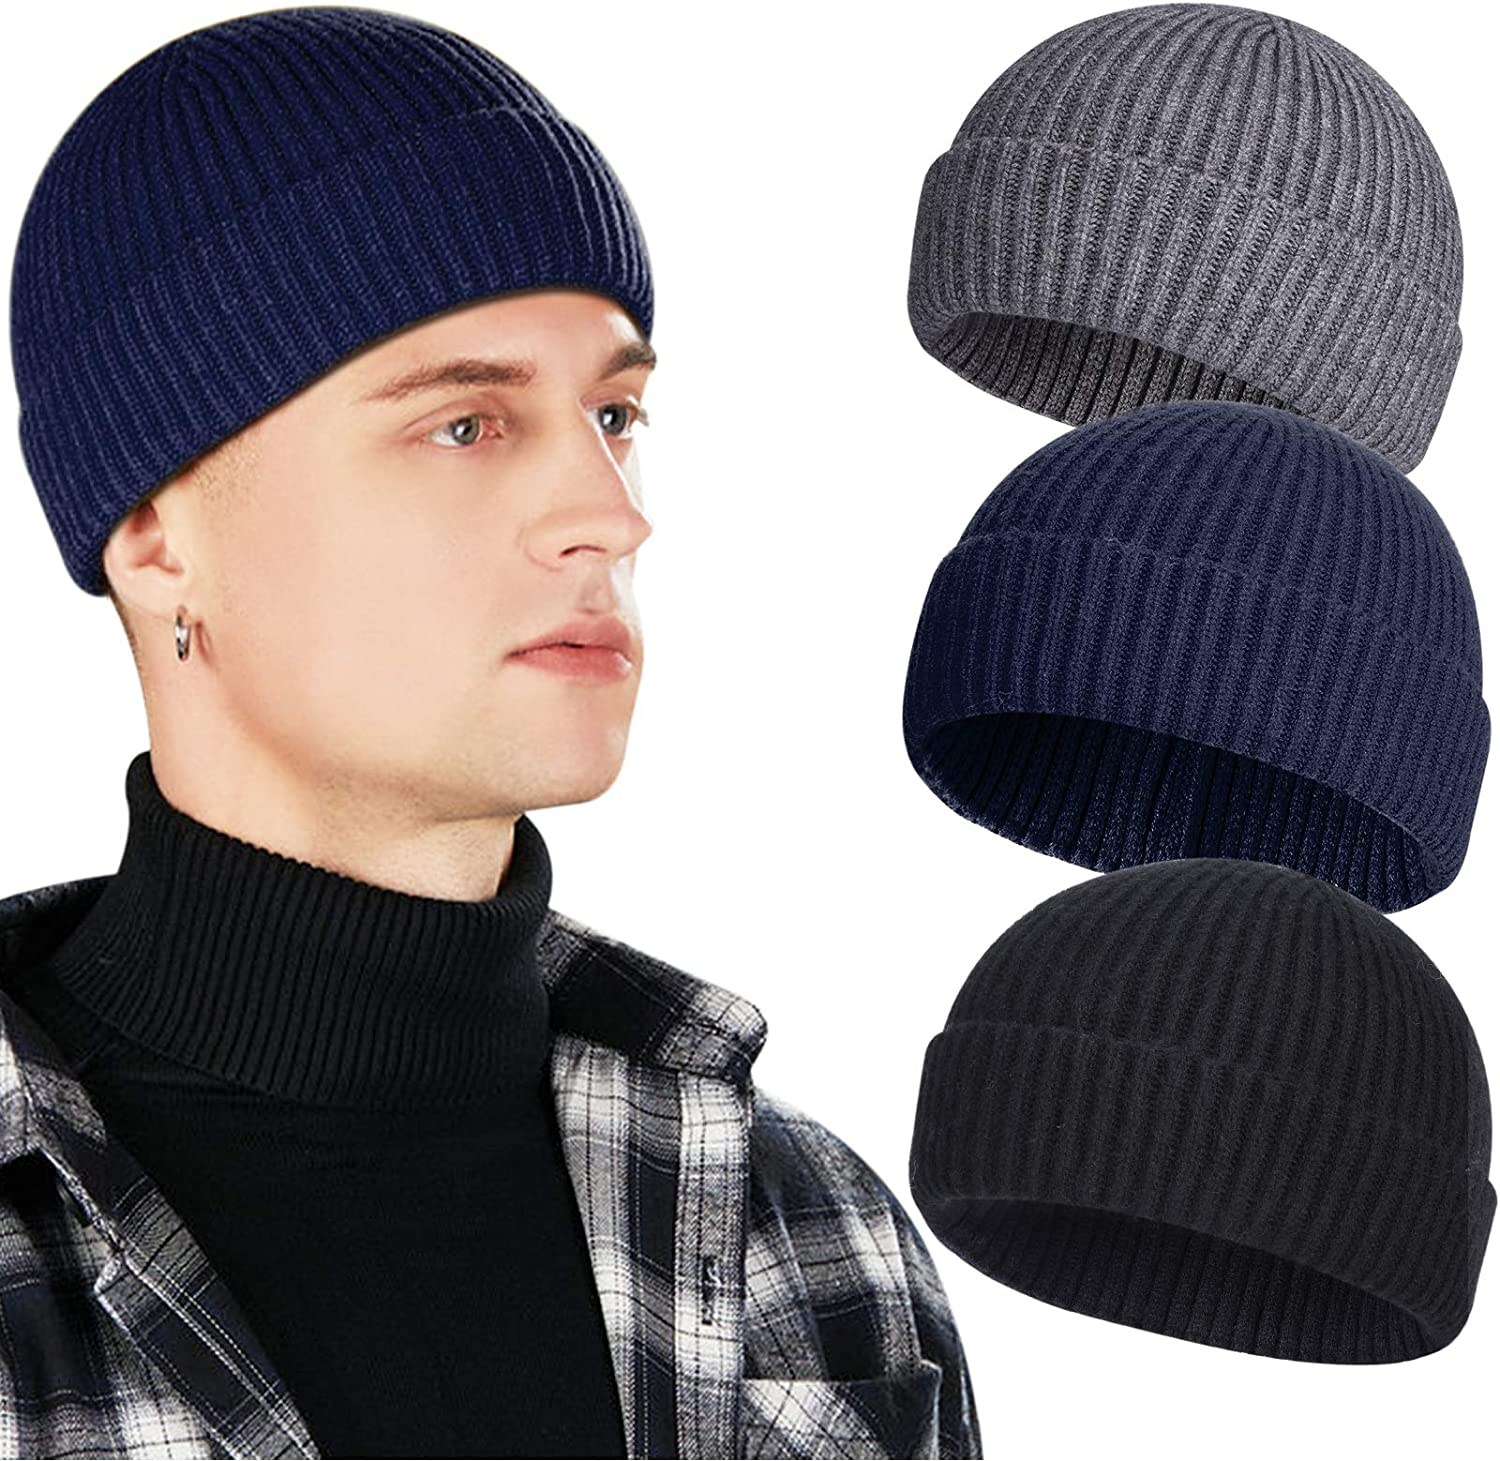 3 Pack Wool Quality inspection Fisherman Beanies for A surprise price is realized Men Short Knit Cap Watch Cuff